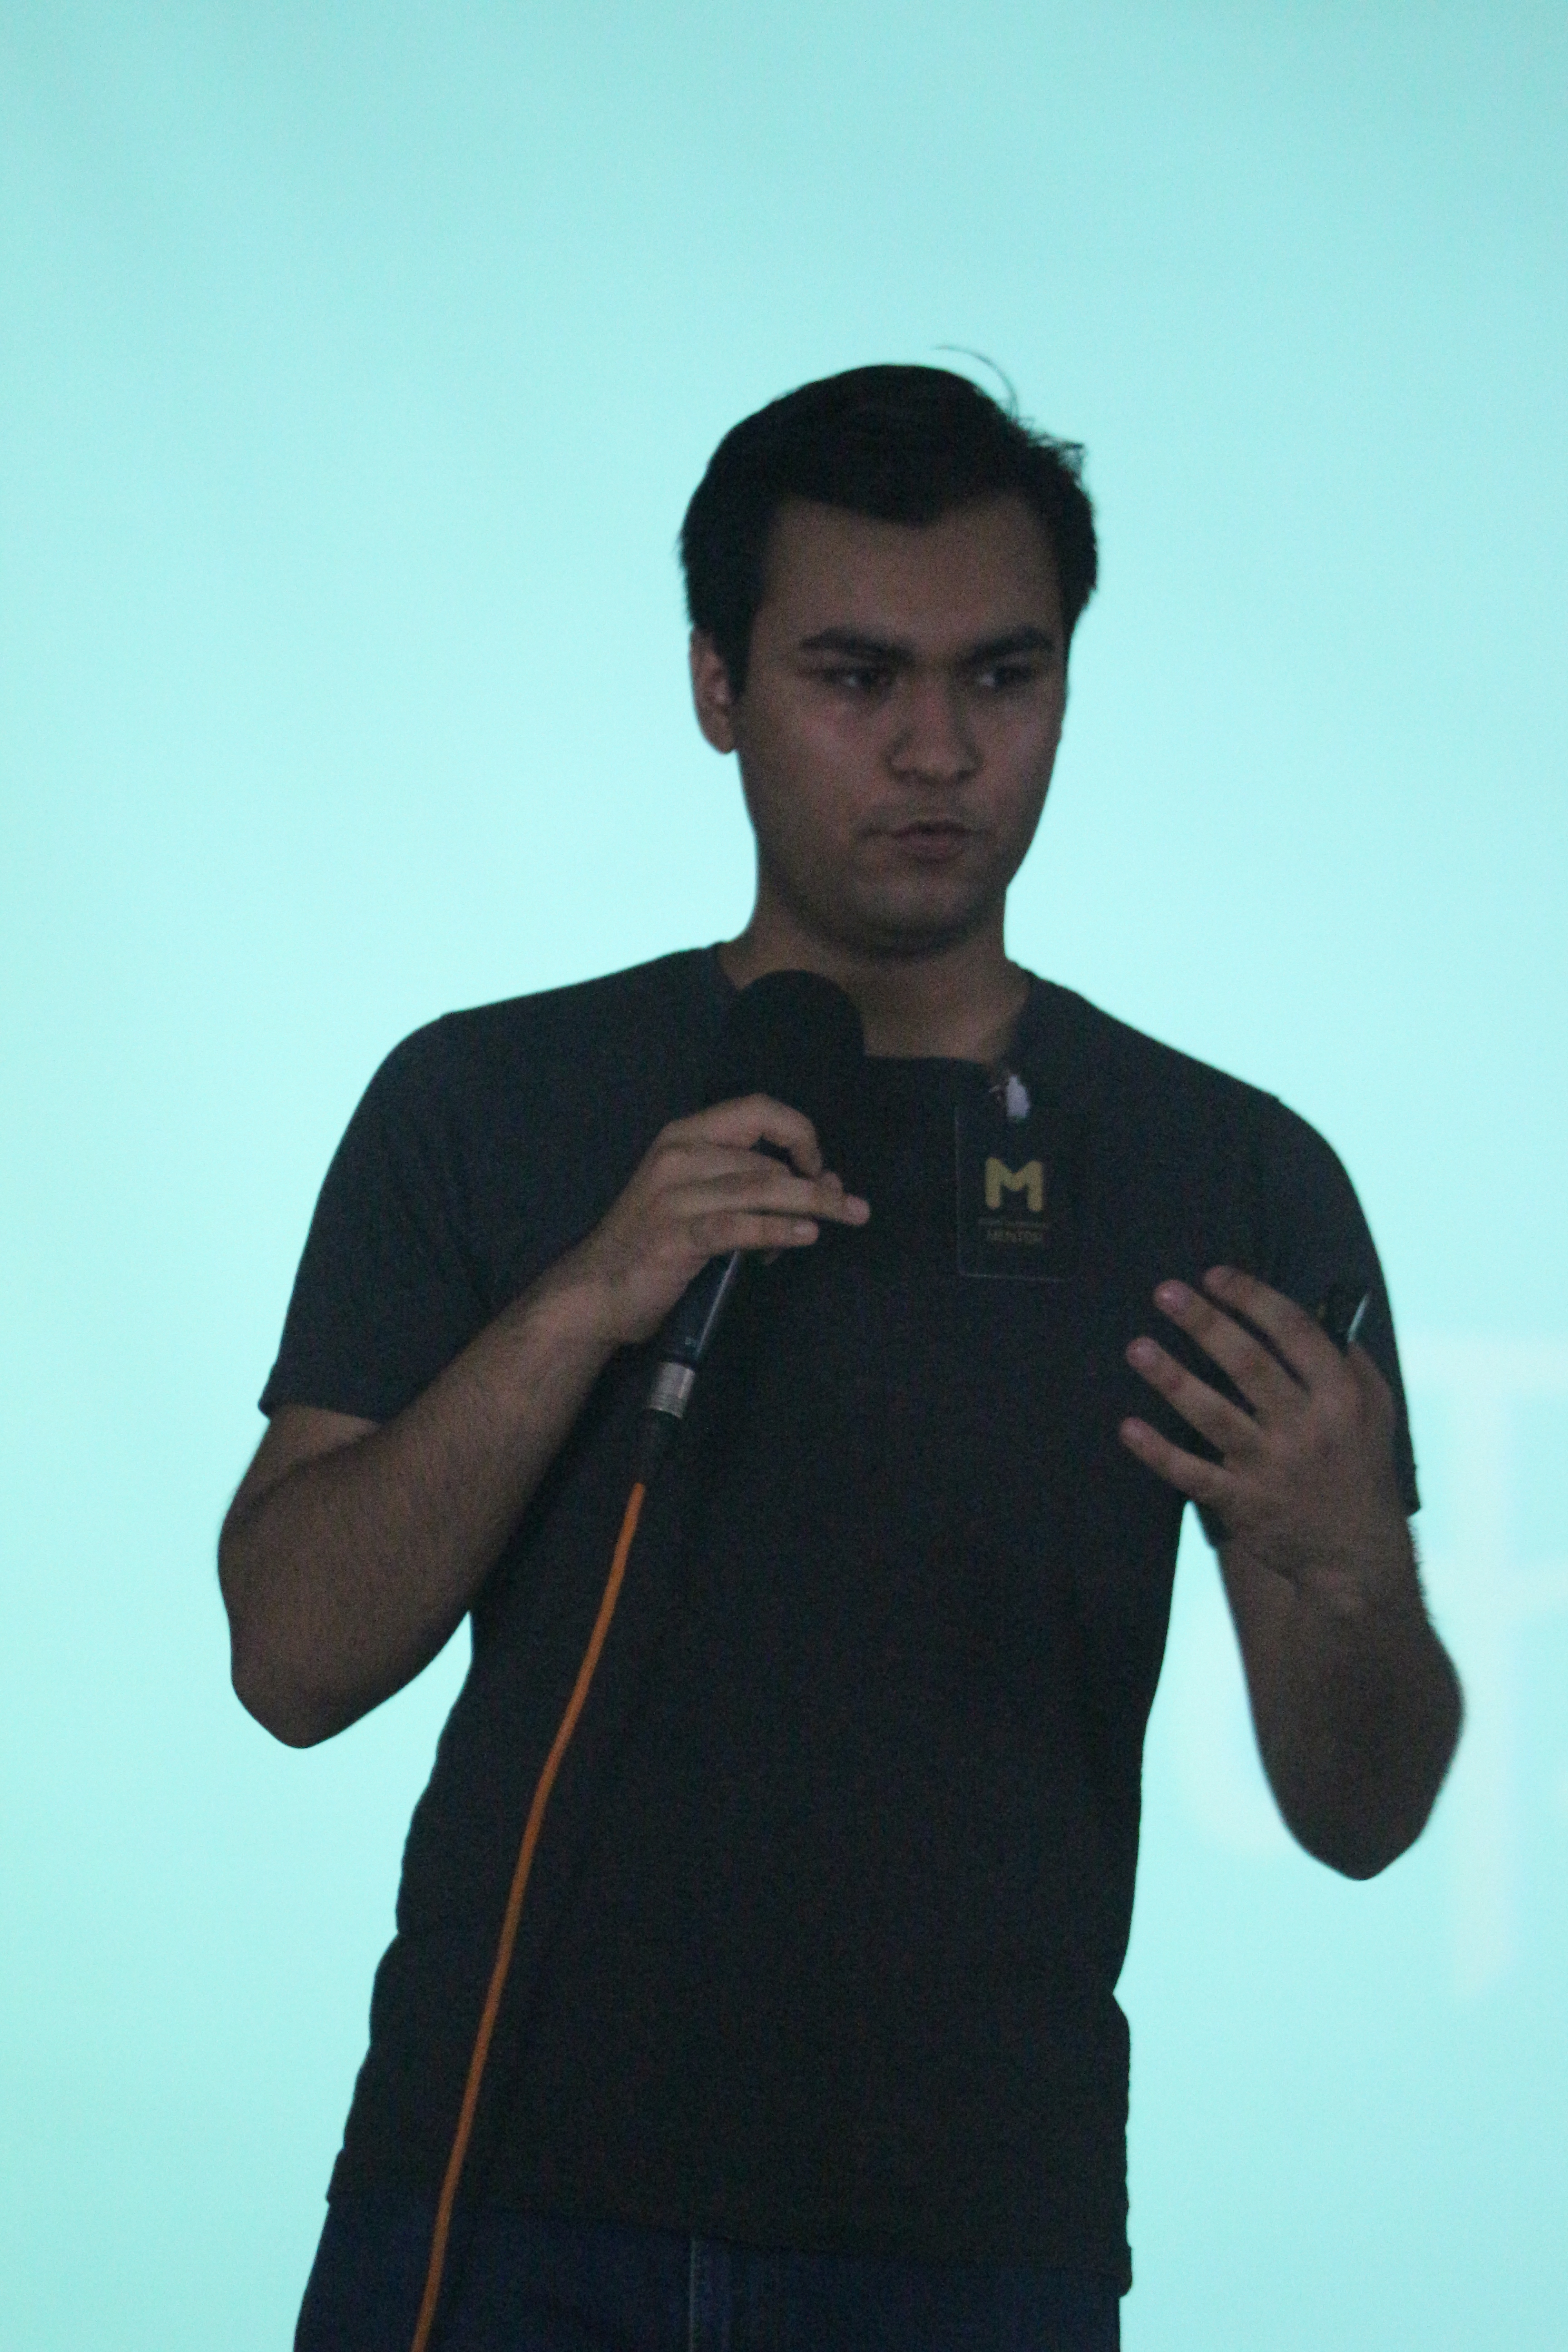 Anand Chowdhary speaking with blue background